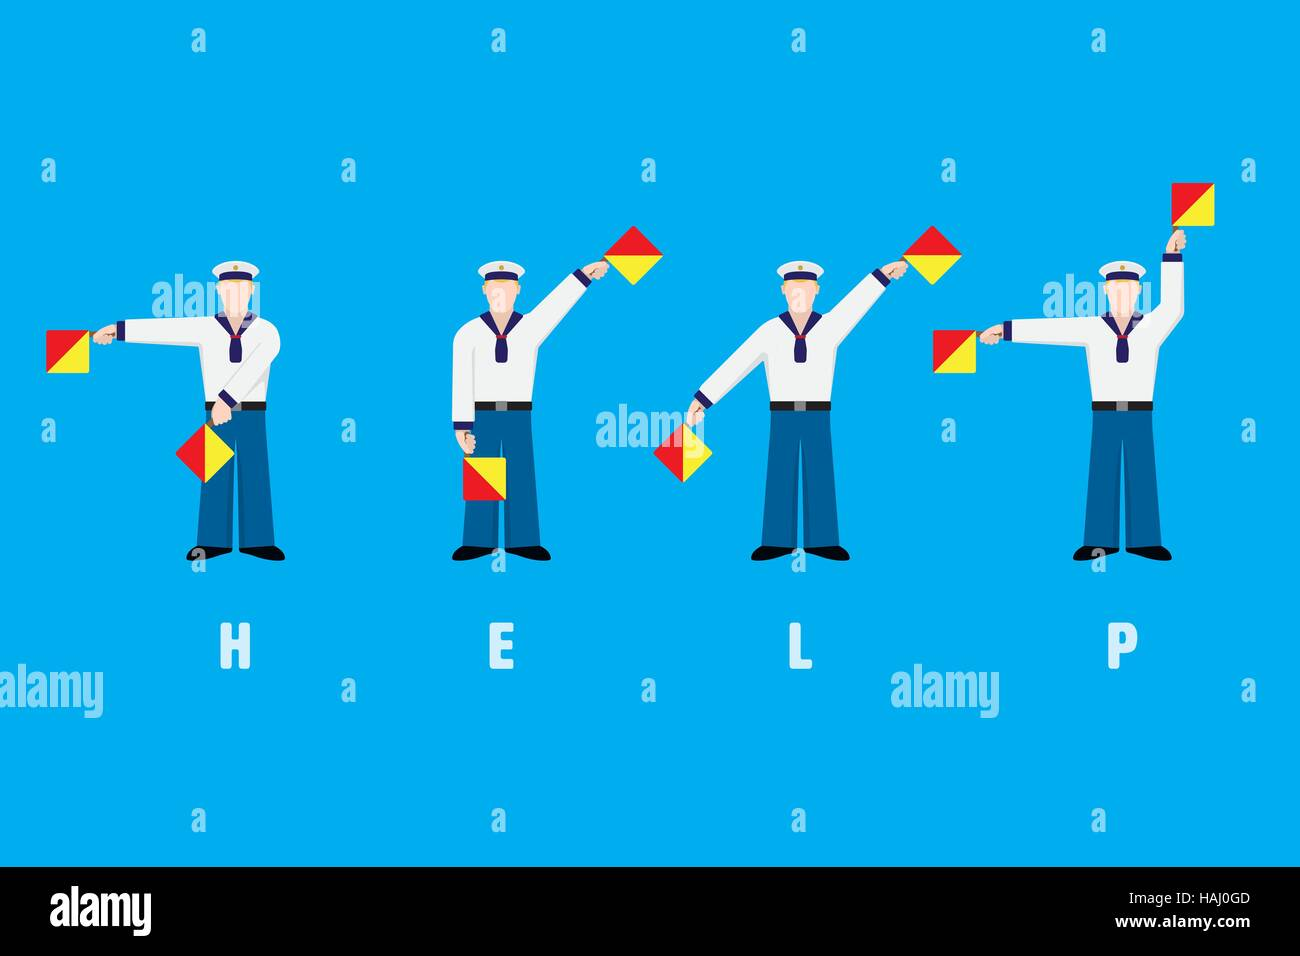 Flat design sailors waving signal flags, spelling word help with flag semaphore system - Stock Image